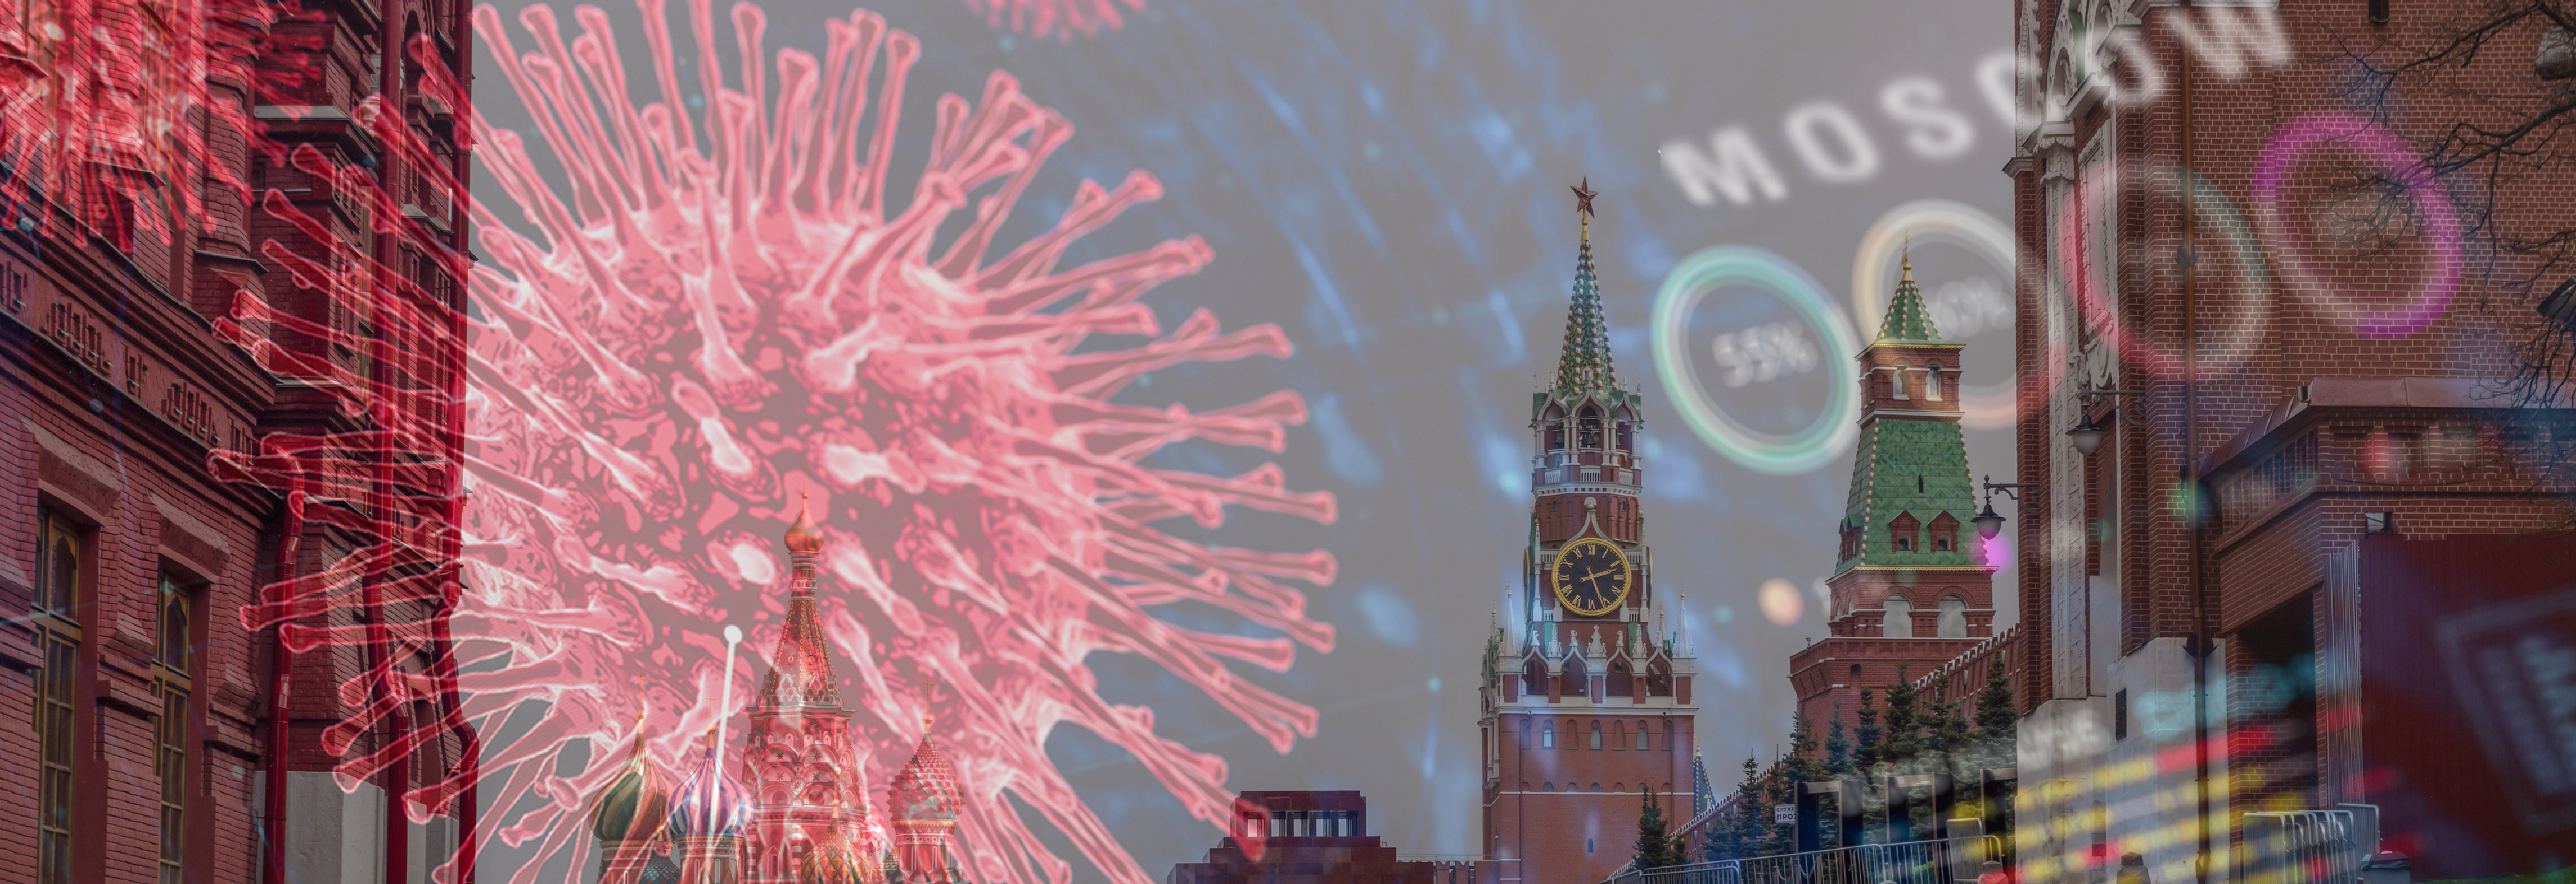 Open Data Platform Enables Moscow to Respond Rapidly to COVID-19 Crisis_Web 1400 x 480px@3x